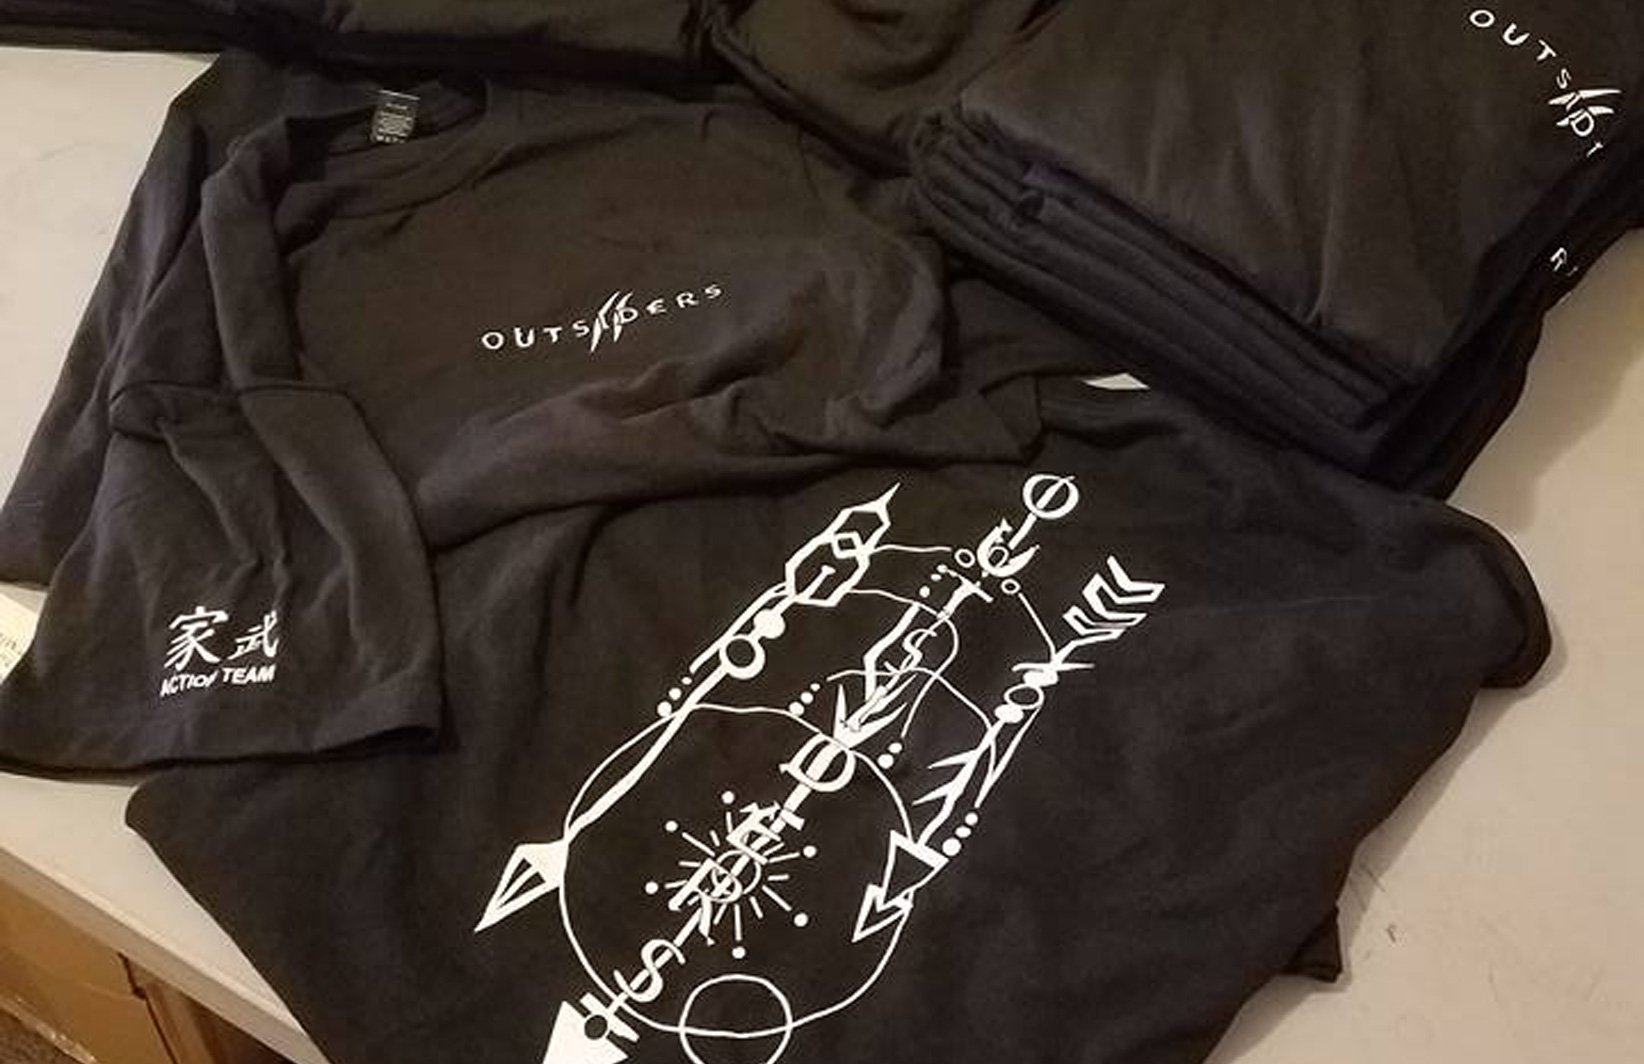 outsiders_shirts